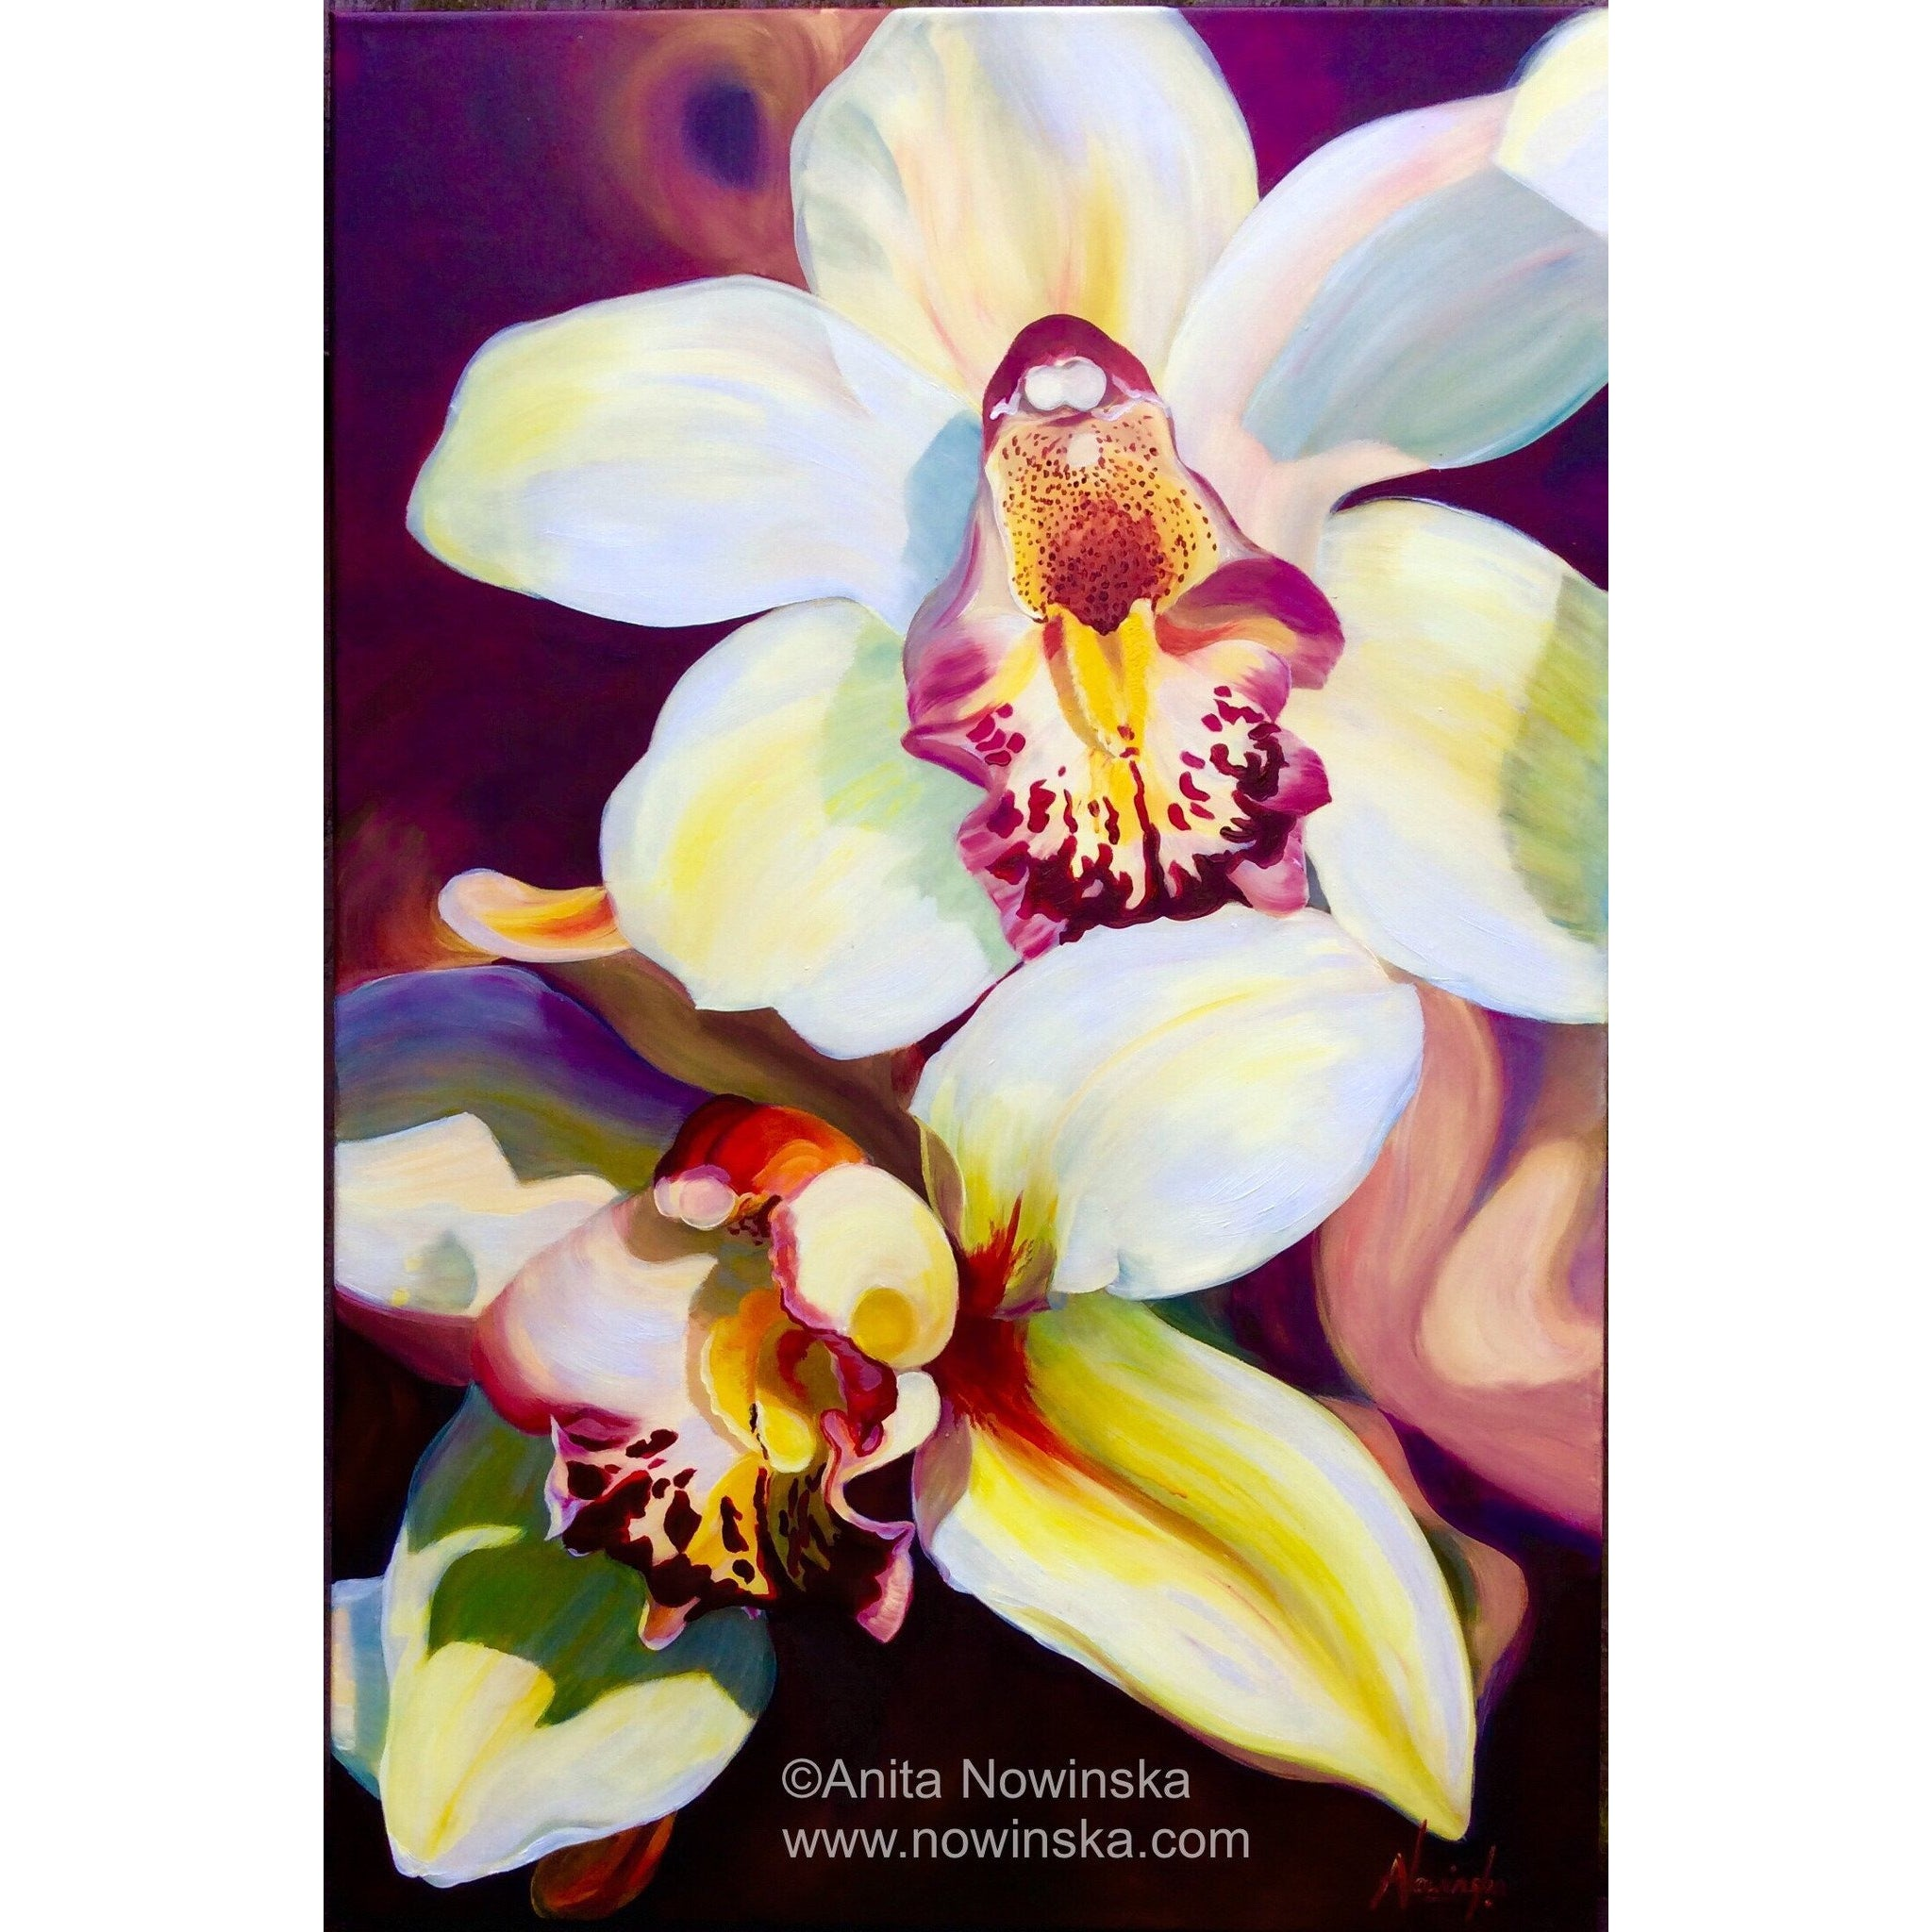 Voracious- Orchid, Flower Painting, Burgundy, yellow, pink, acrylic on canvas original